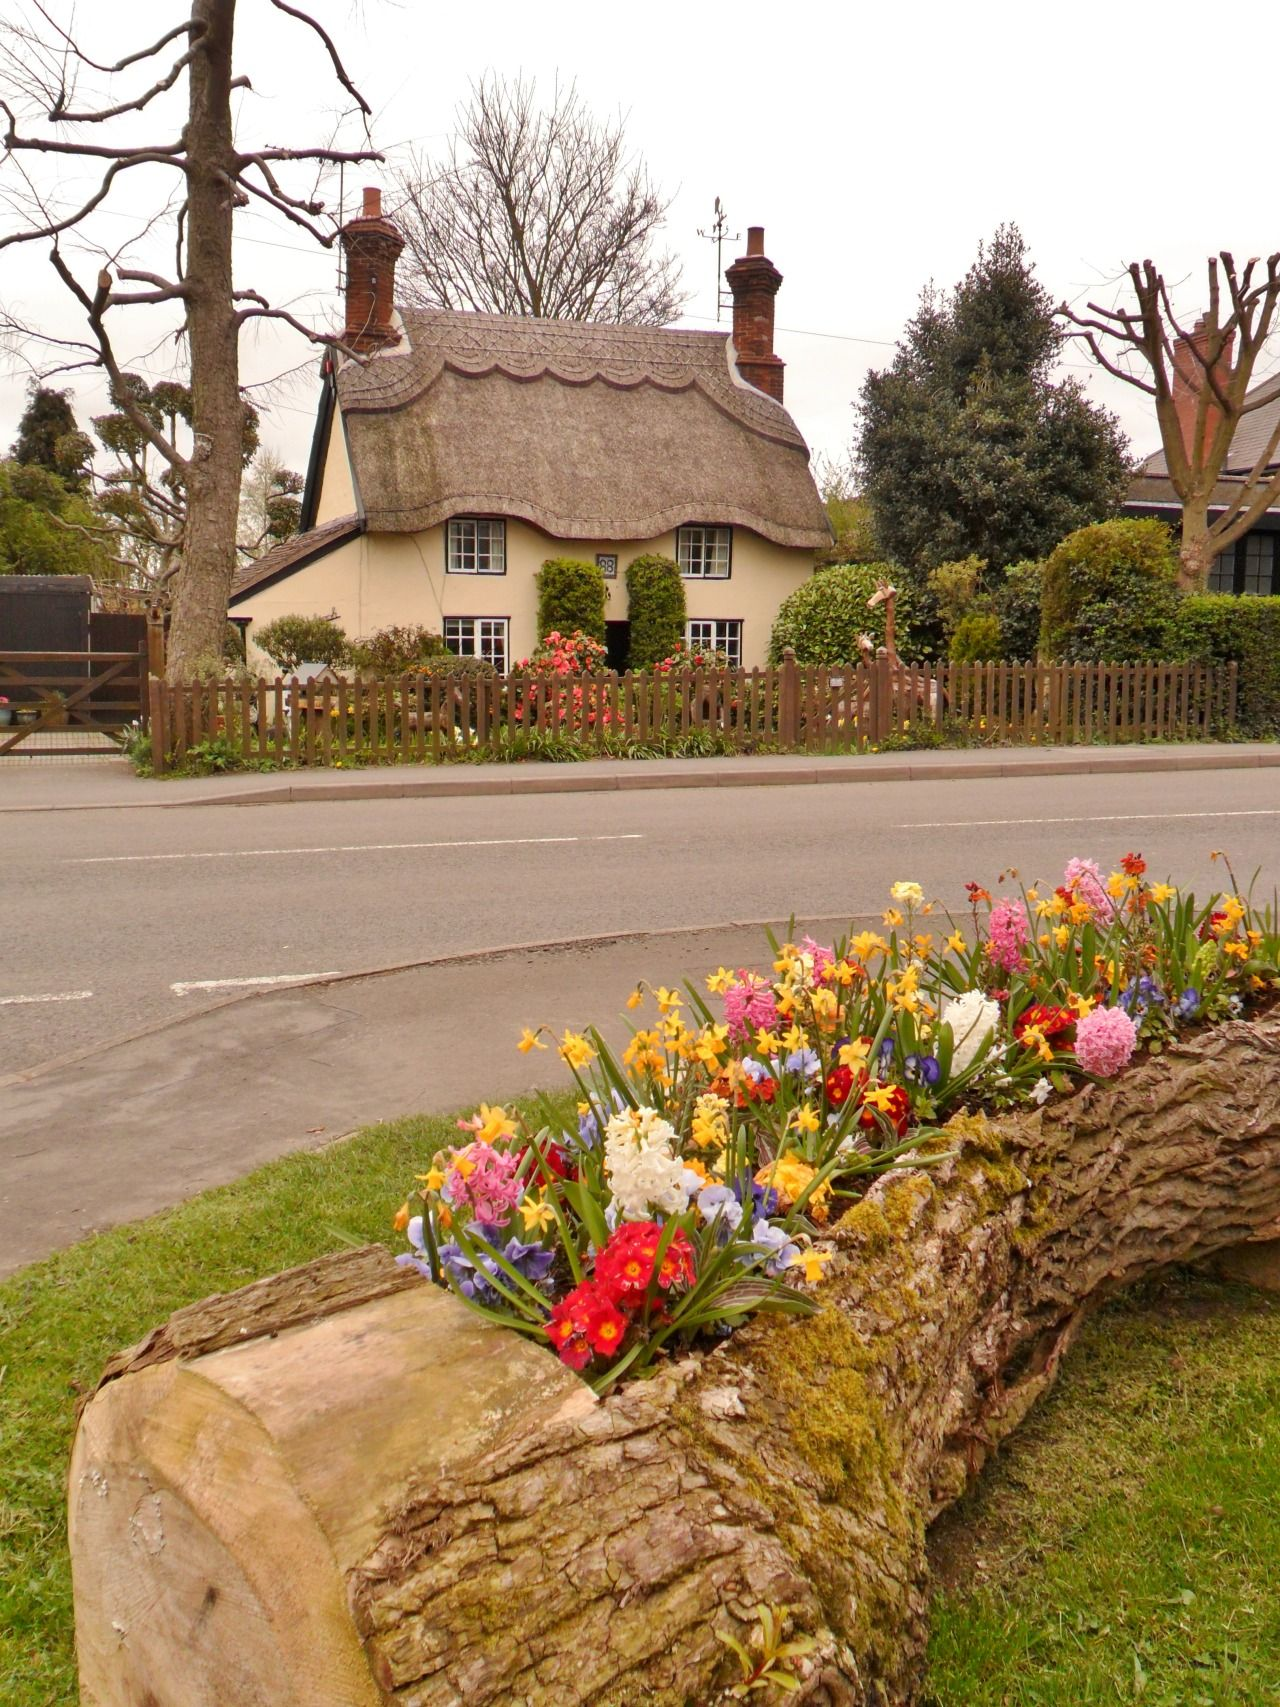 Thatched Cottage, Market Bosworth, Leicestershire, EnglandAll ...